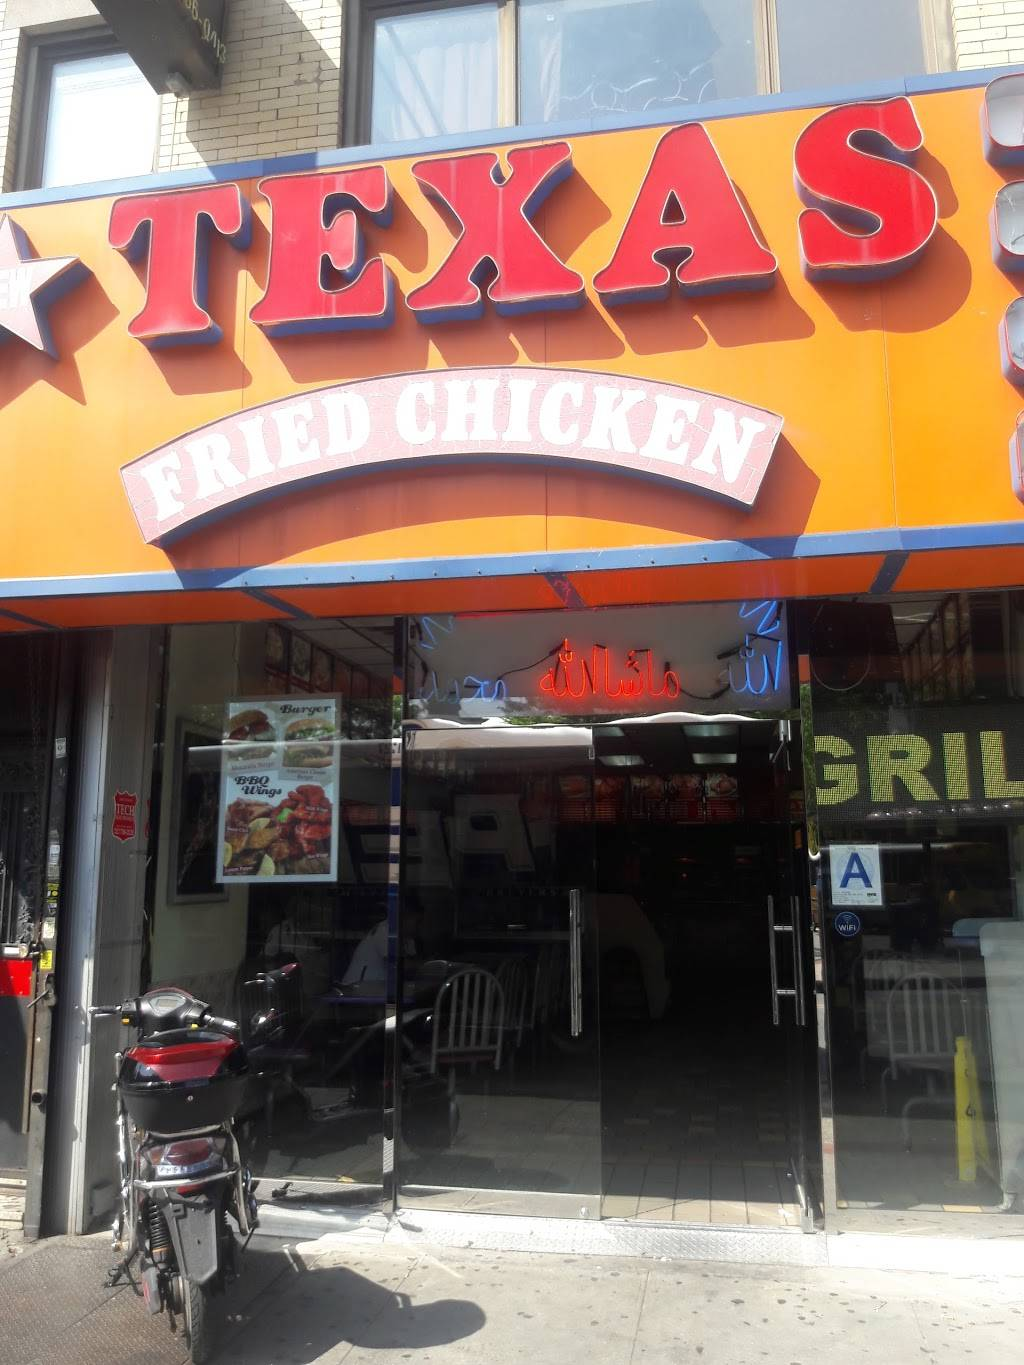 New Texas Fried Chickens | restaurant | 803 Cypress Ave, Ridgewood, NY 11385, USA | 7183860413 OR +1 718-386-0413